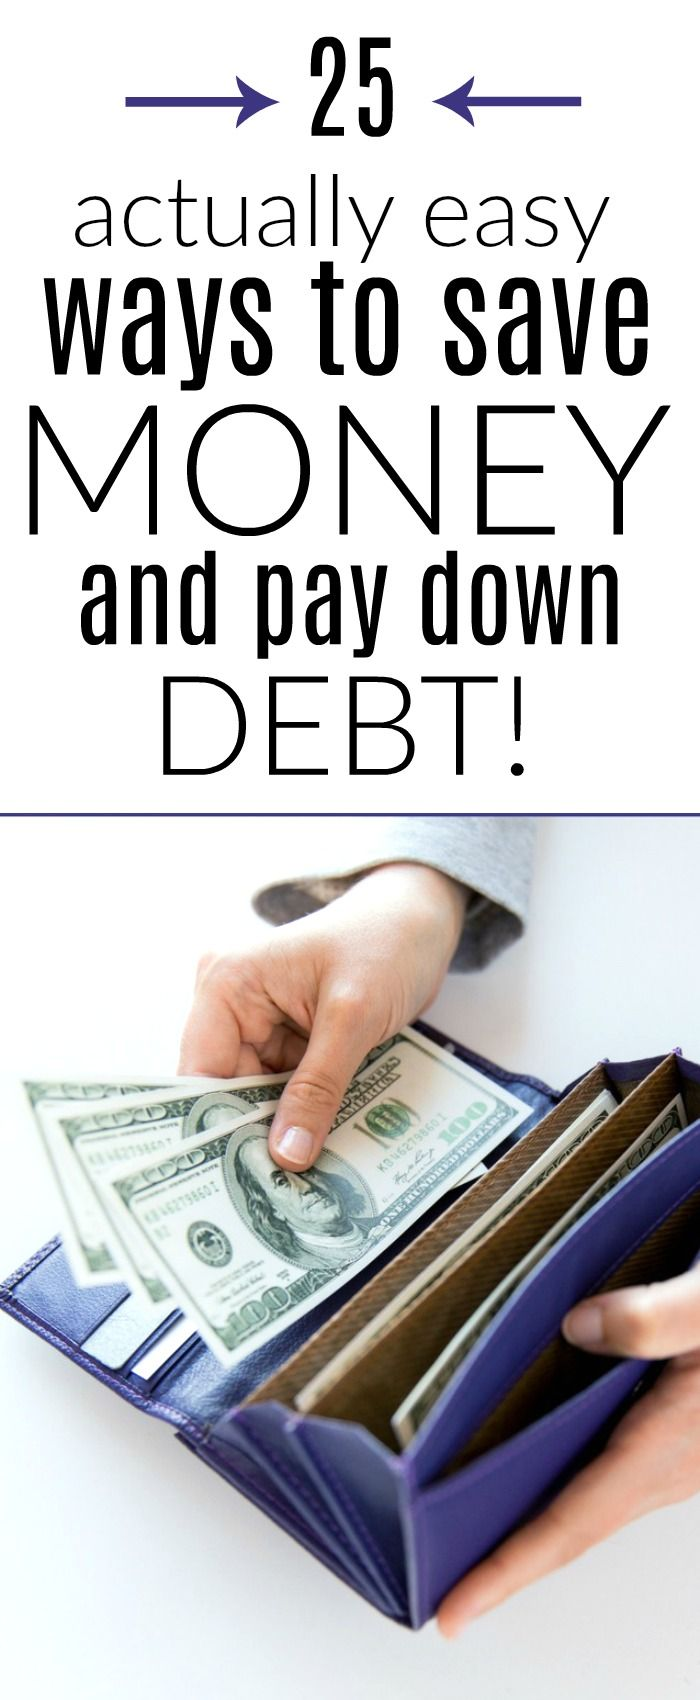 Save money this year with our easy tips. Pay off debt, save money, and live better with our 25 ways to save money.